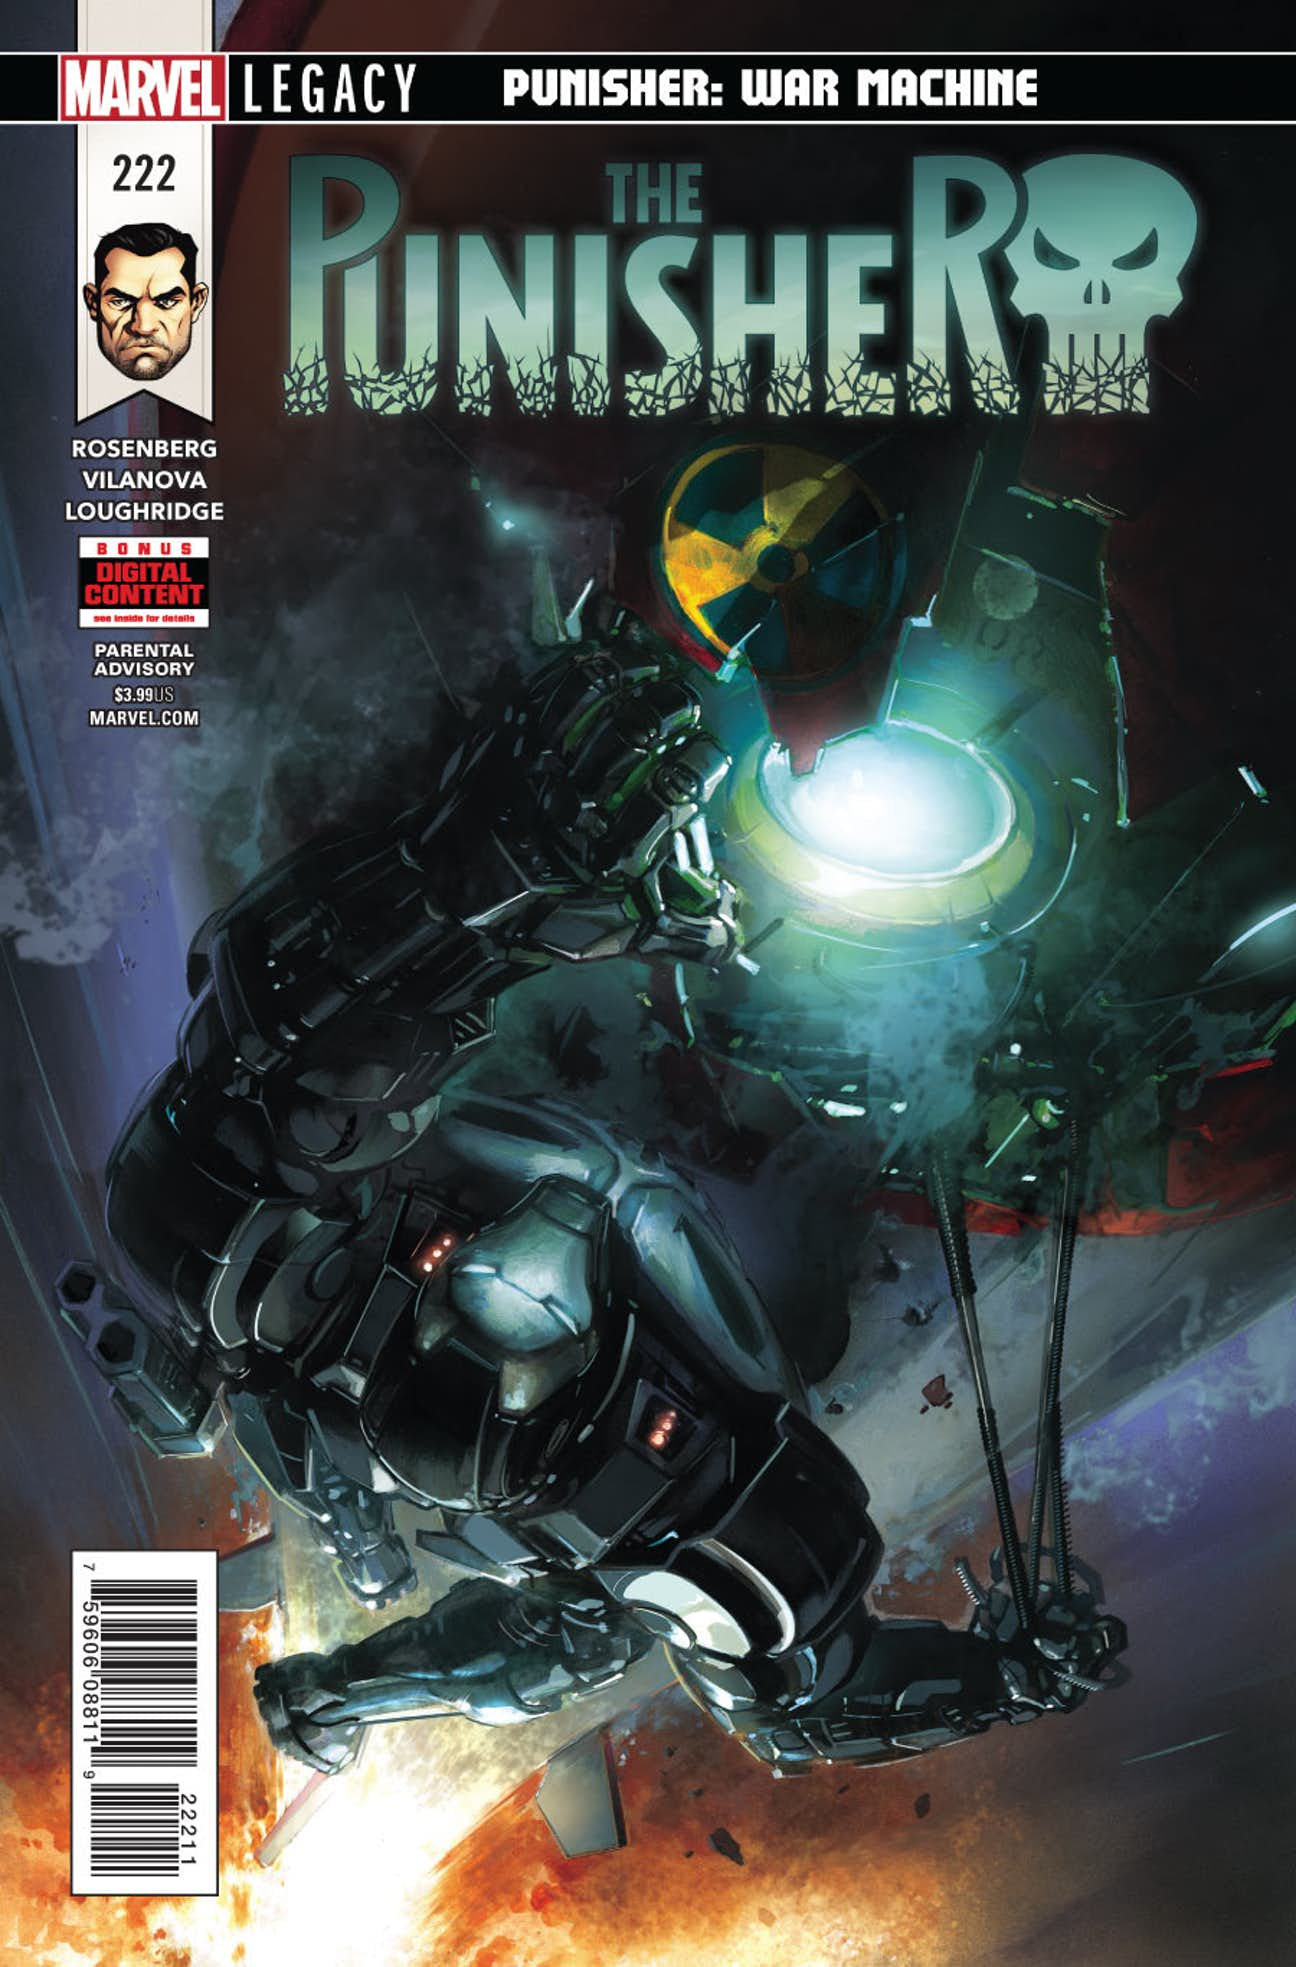 The Punisher Vol 1 #222